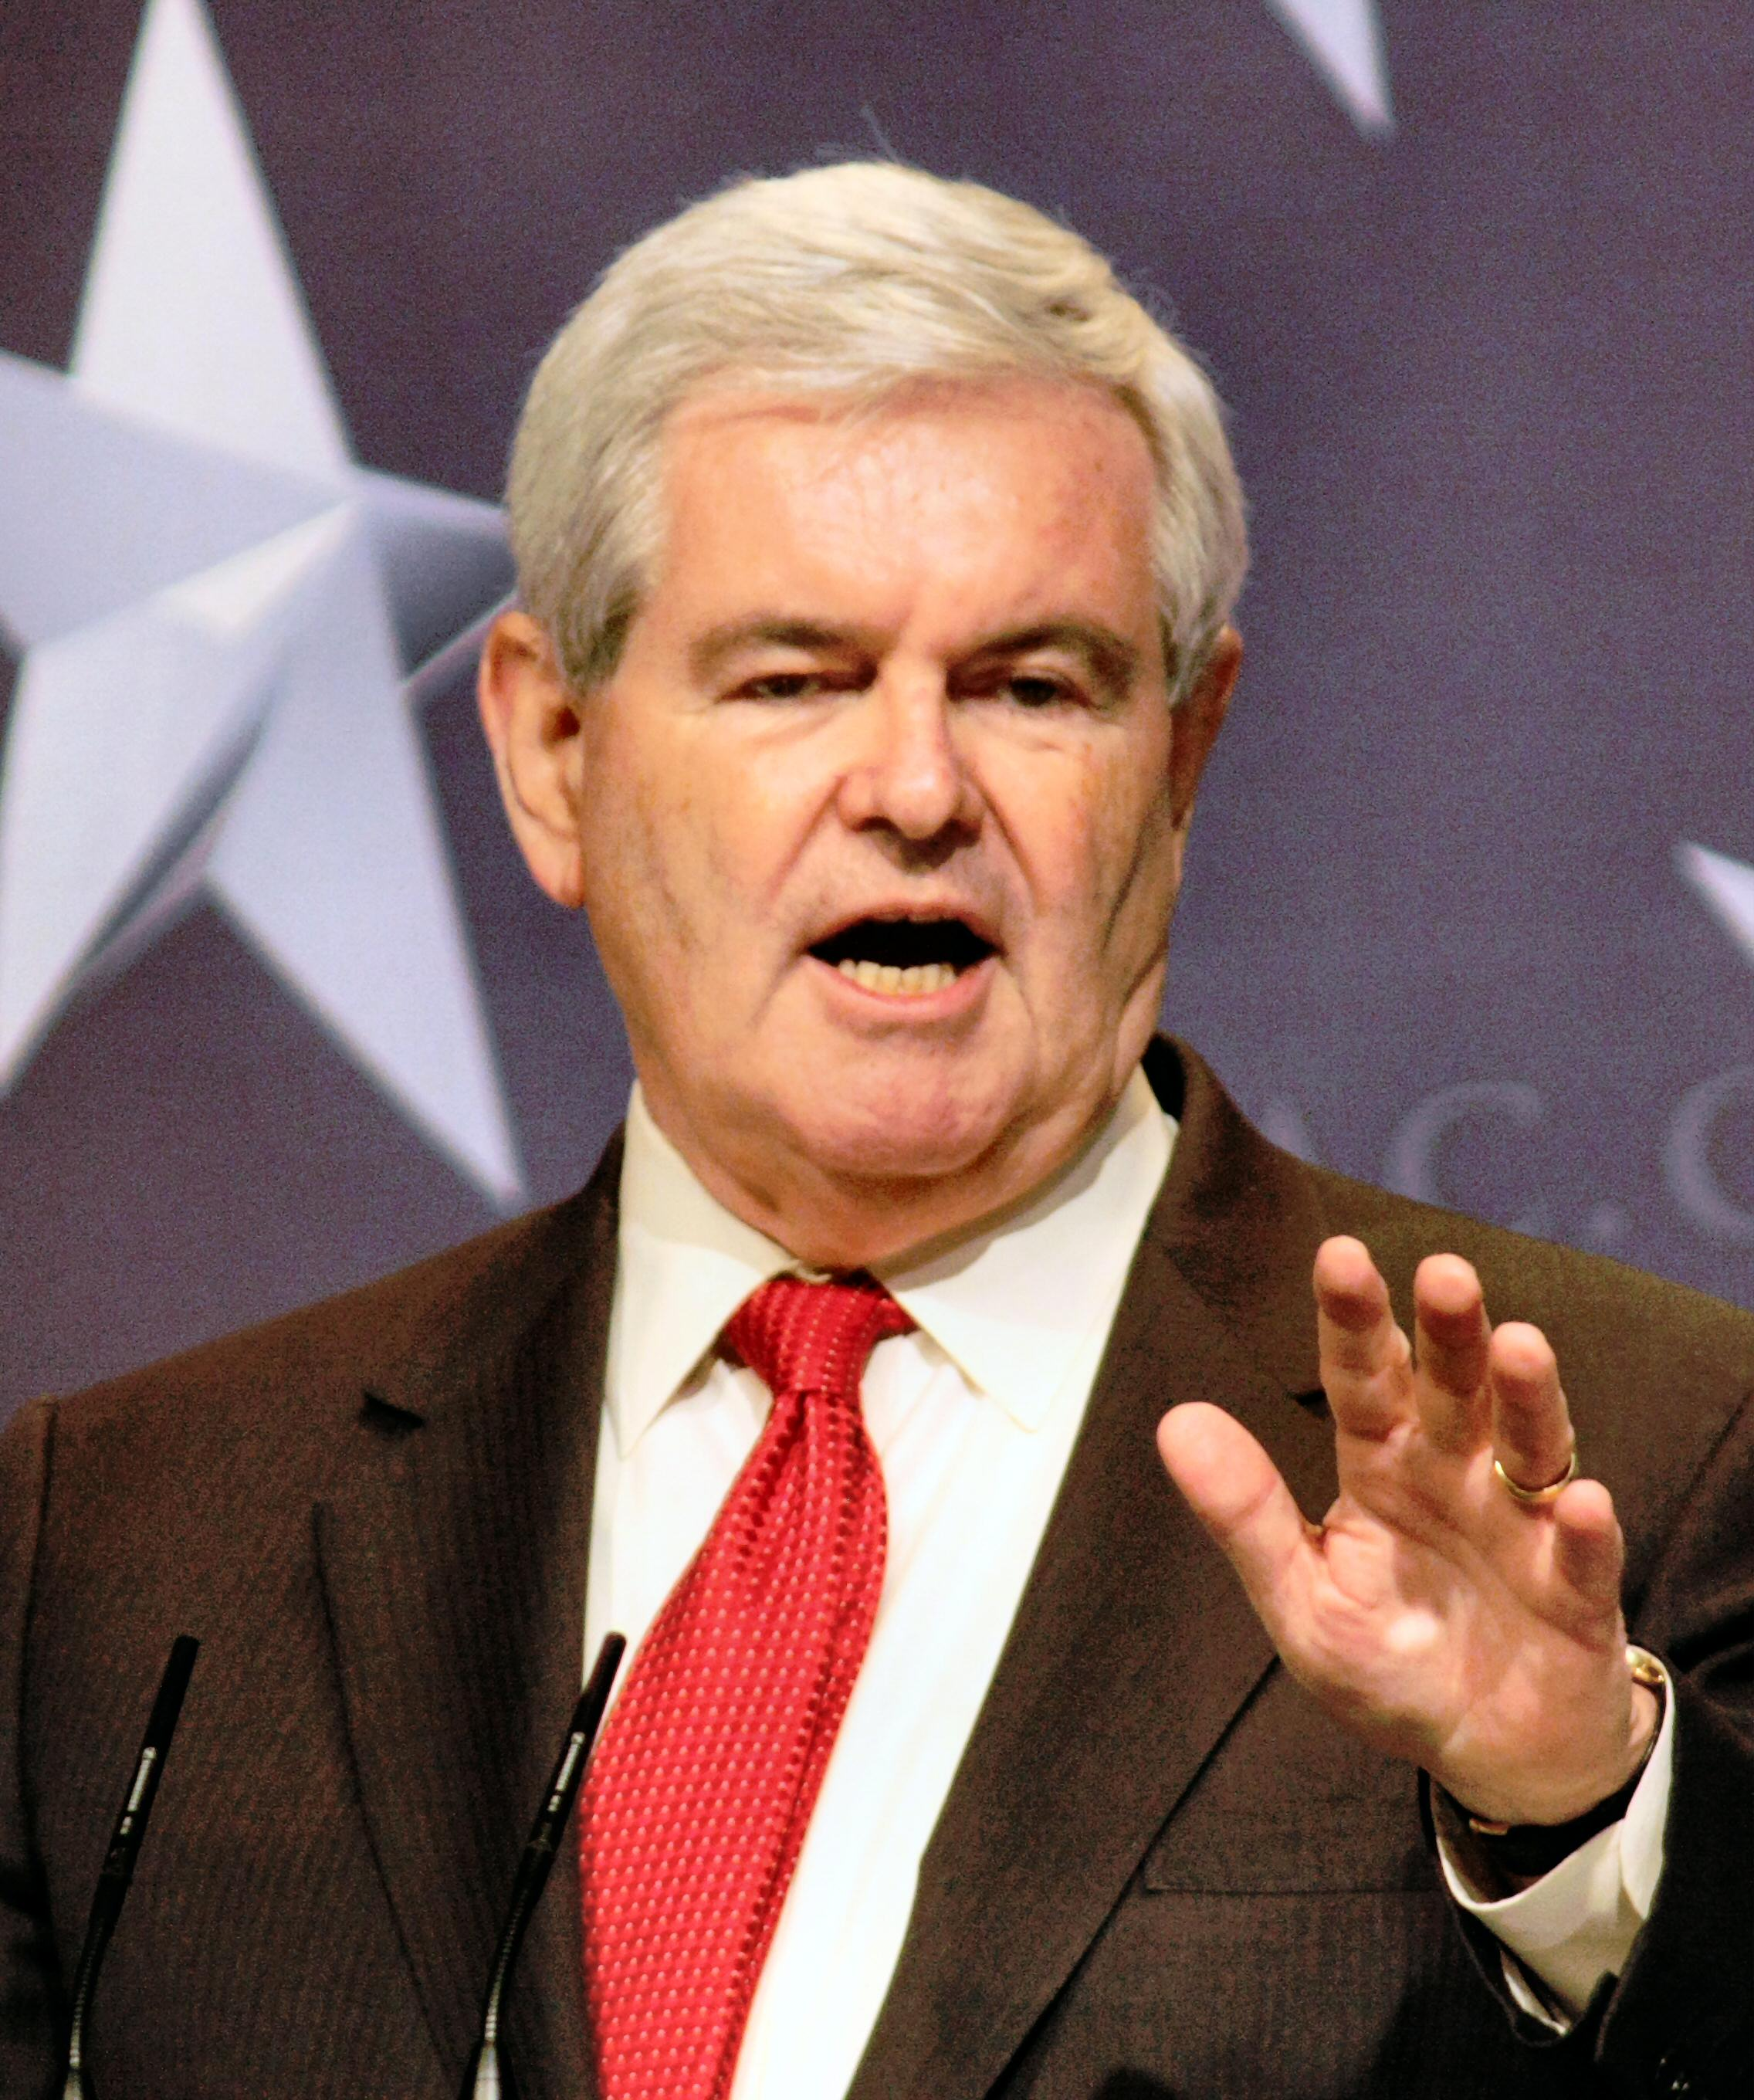 Keep Gingrich out of presidential affairs